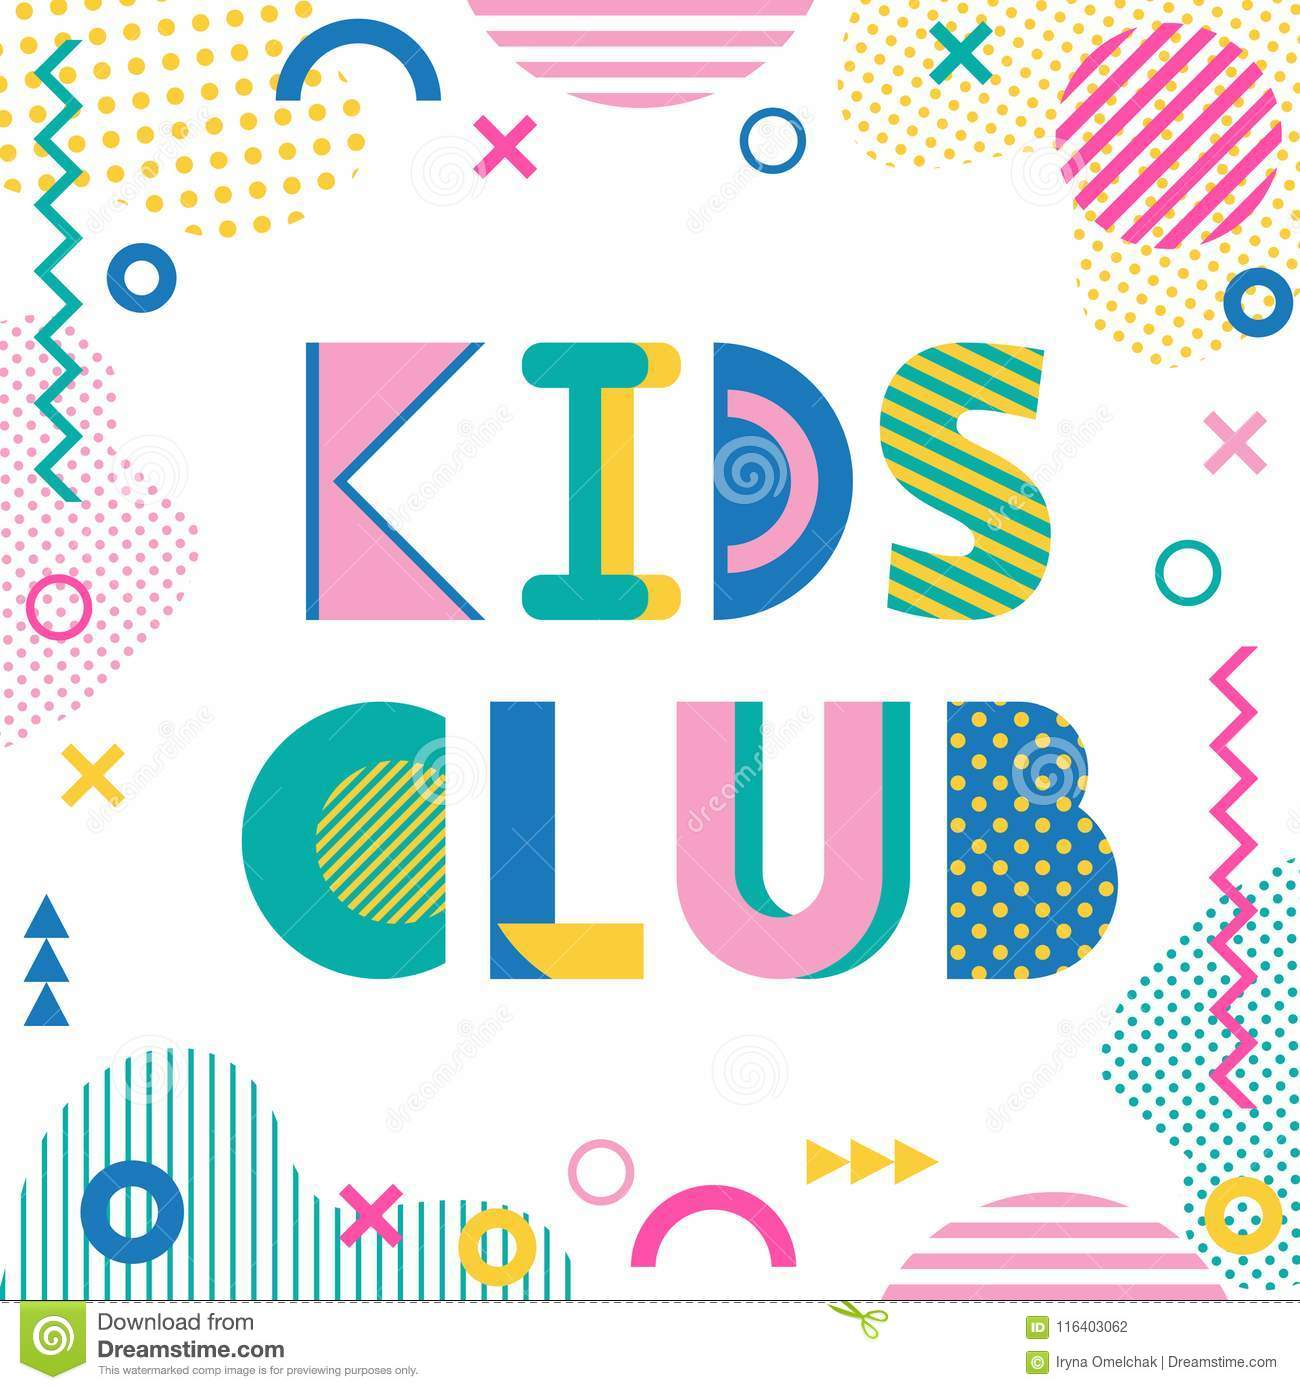 Kids Club Text And Geometric Elements Isolated On A White